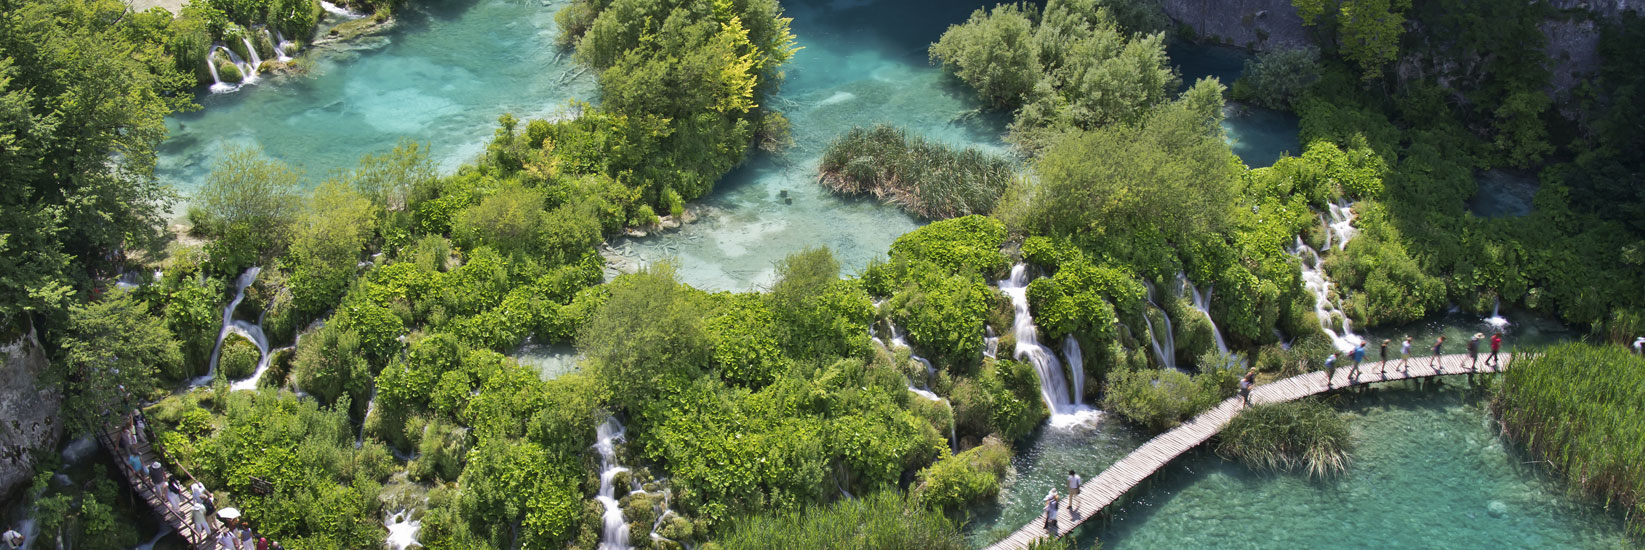 plitvice-lakes-summer-walk